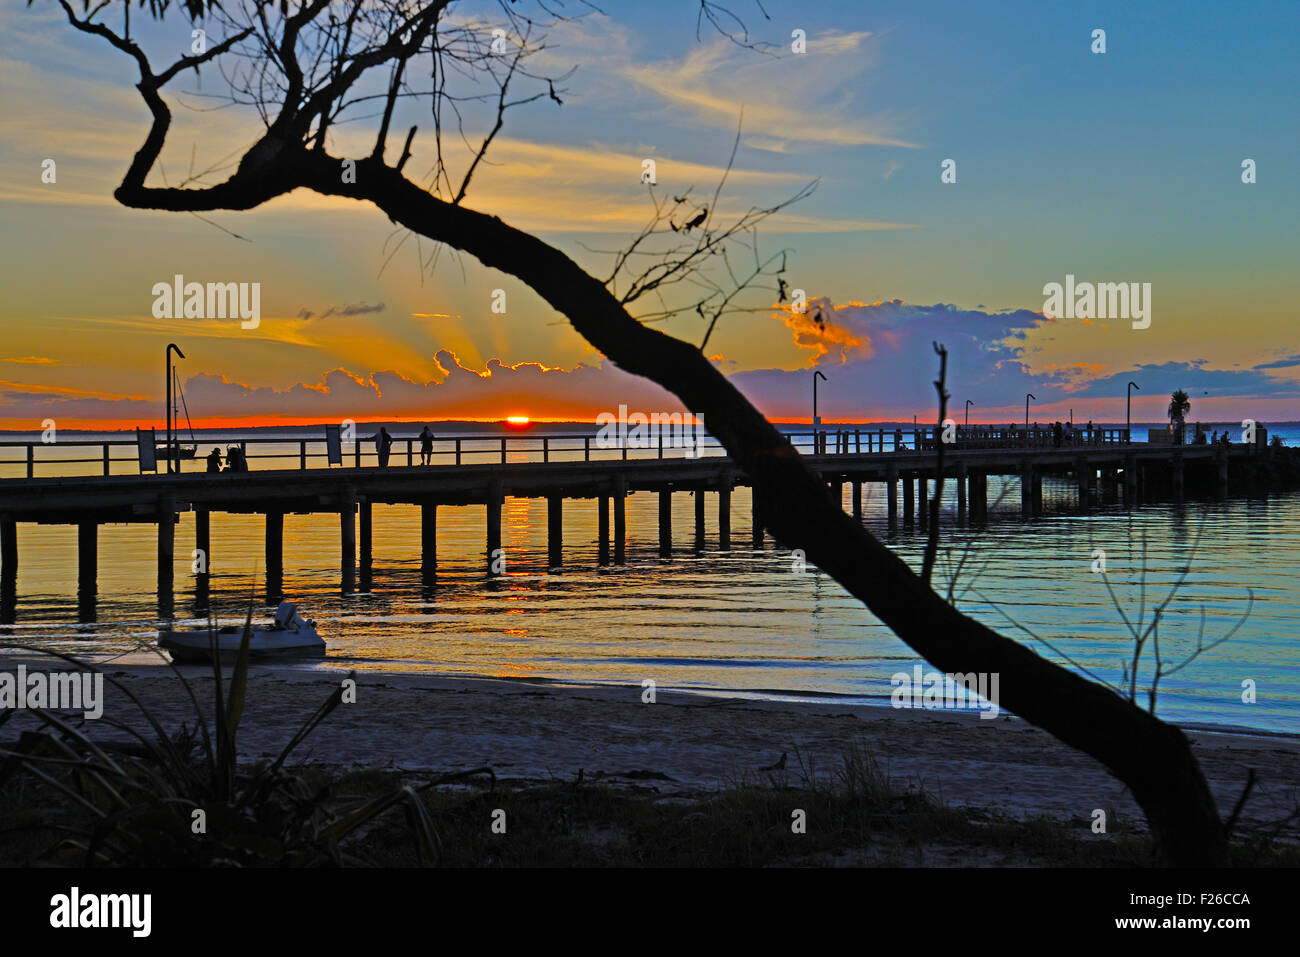 Unique colorful sunset over jetty image captured from Fraser Island, Queensland, Australia - Stock Image